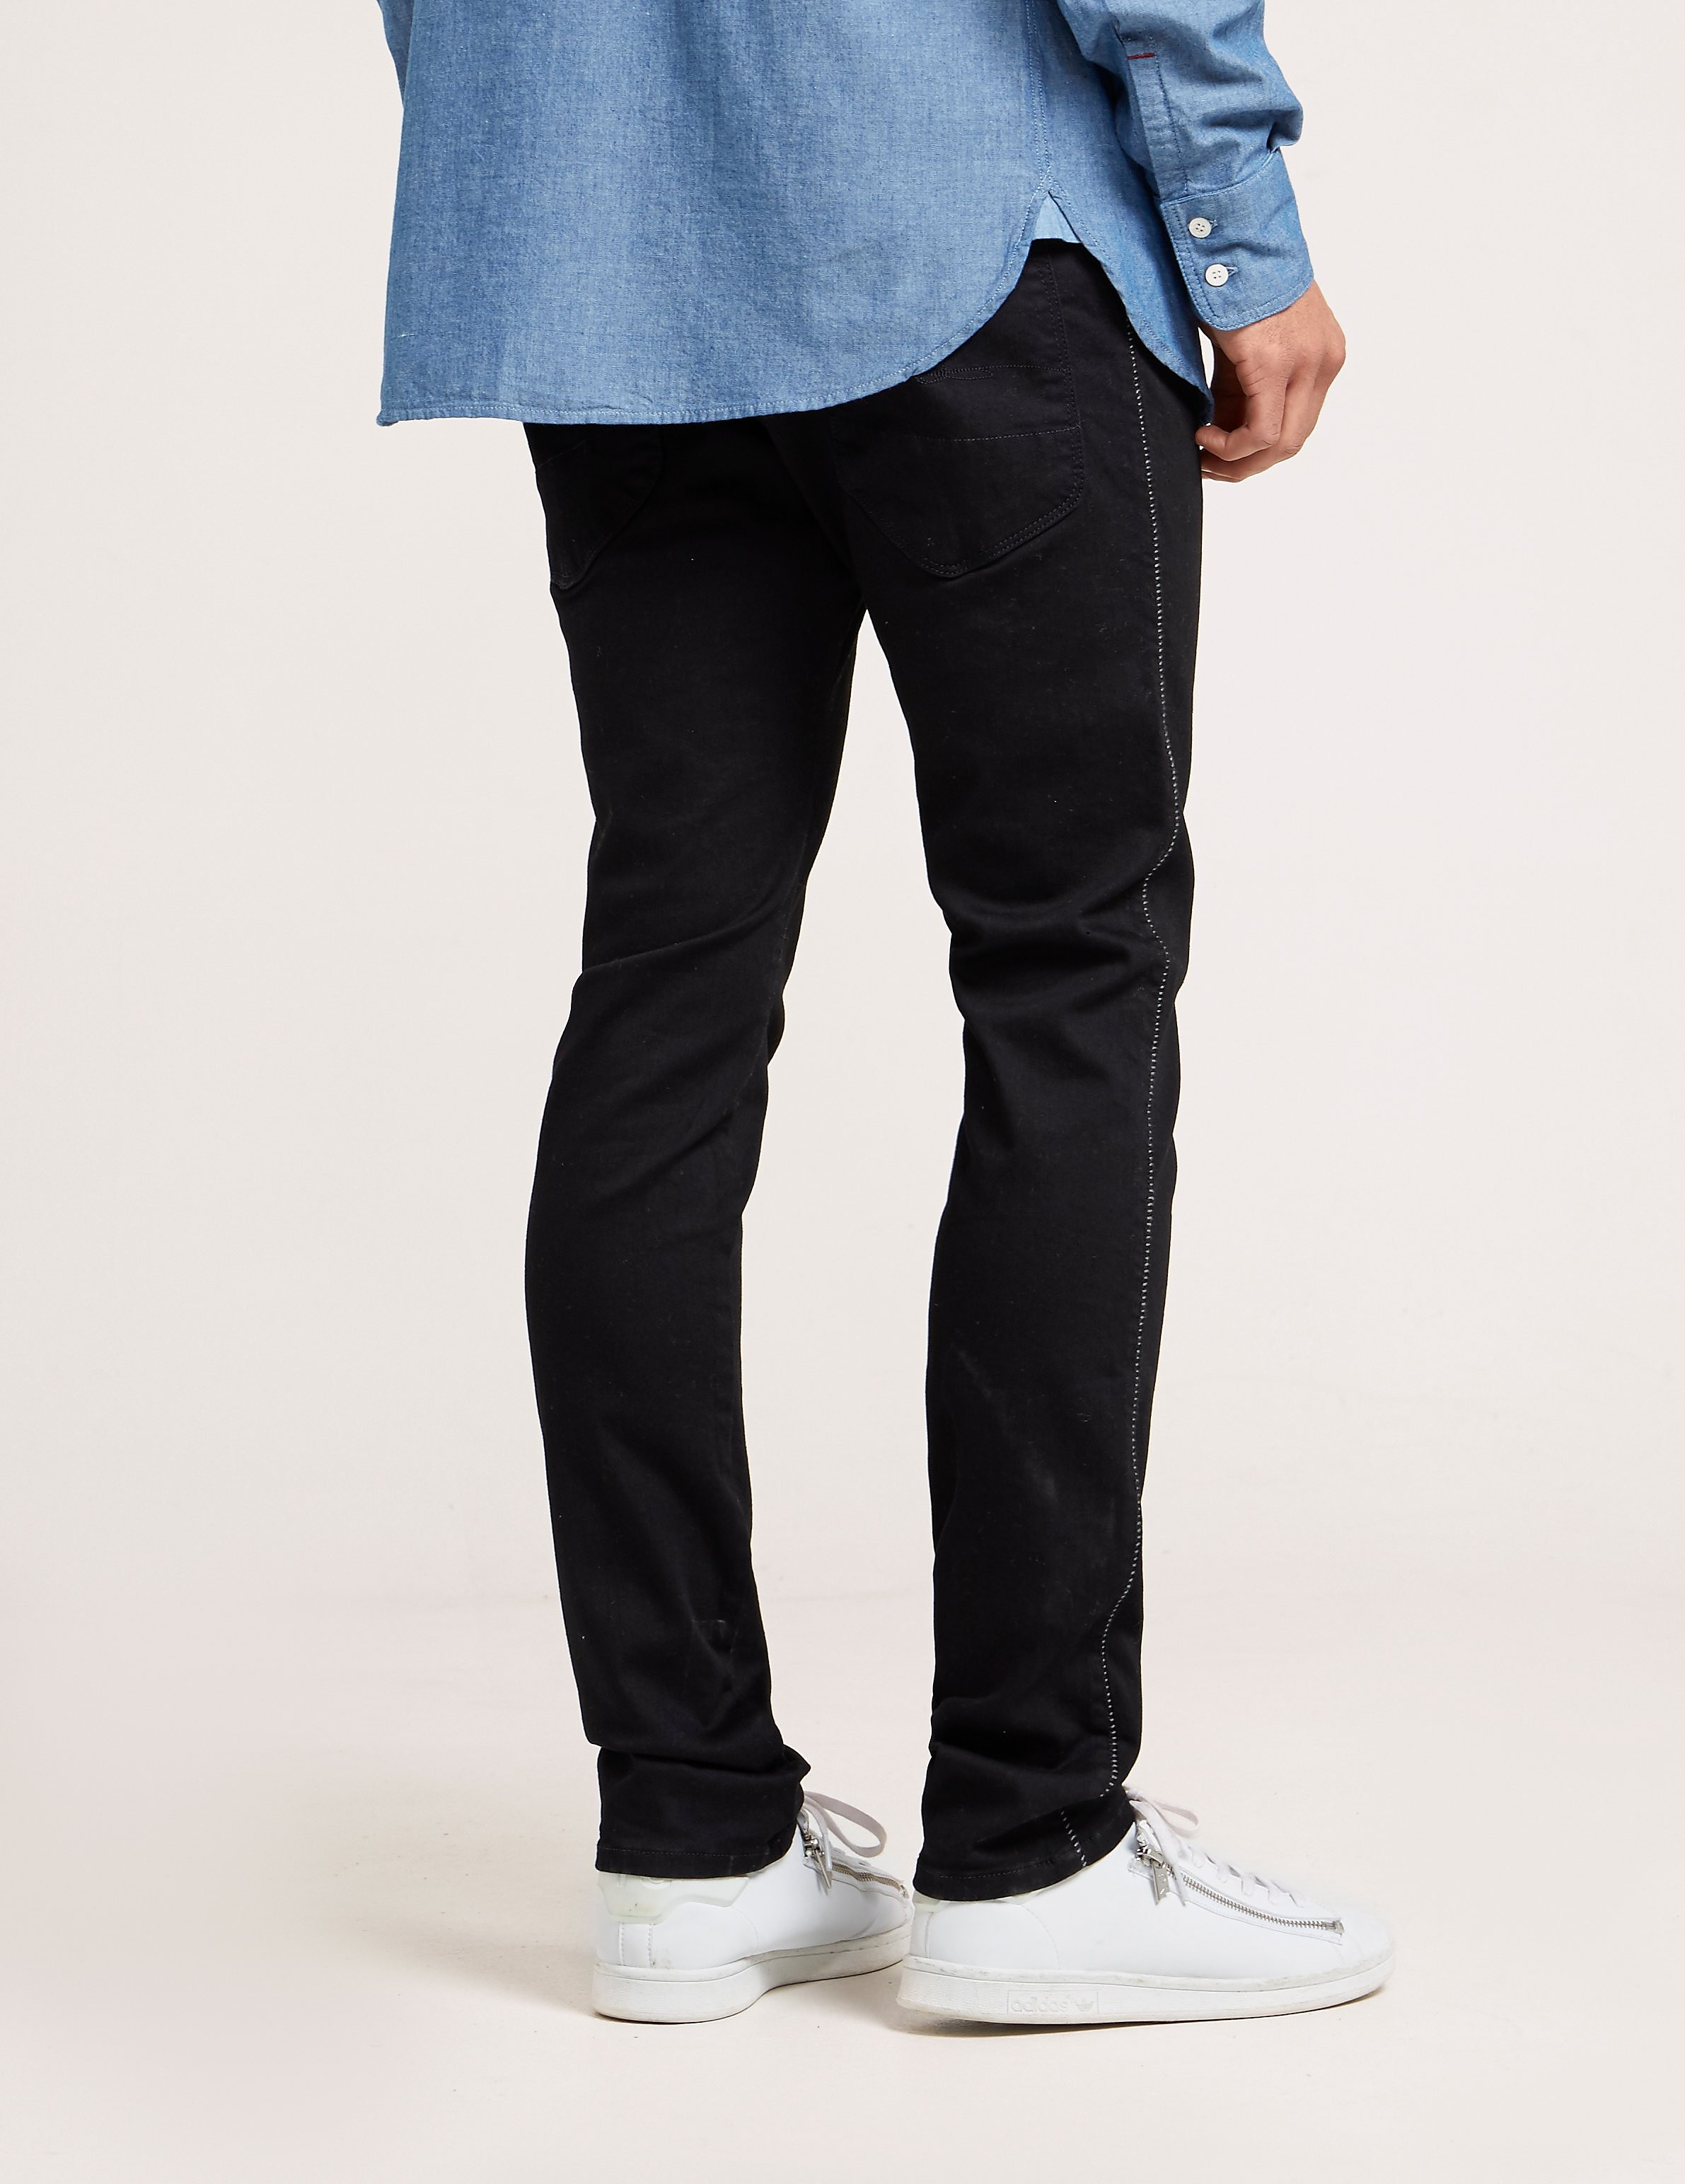 Vivienne Westwood Anglomanie Don Karnage Jeans